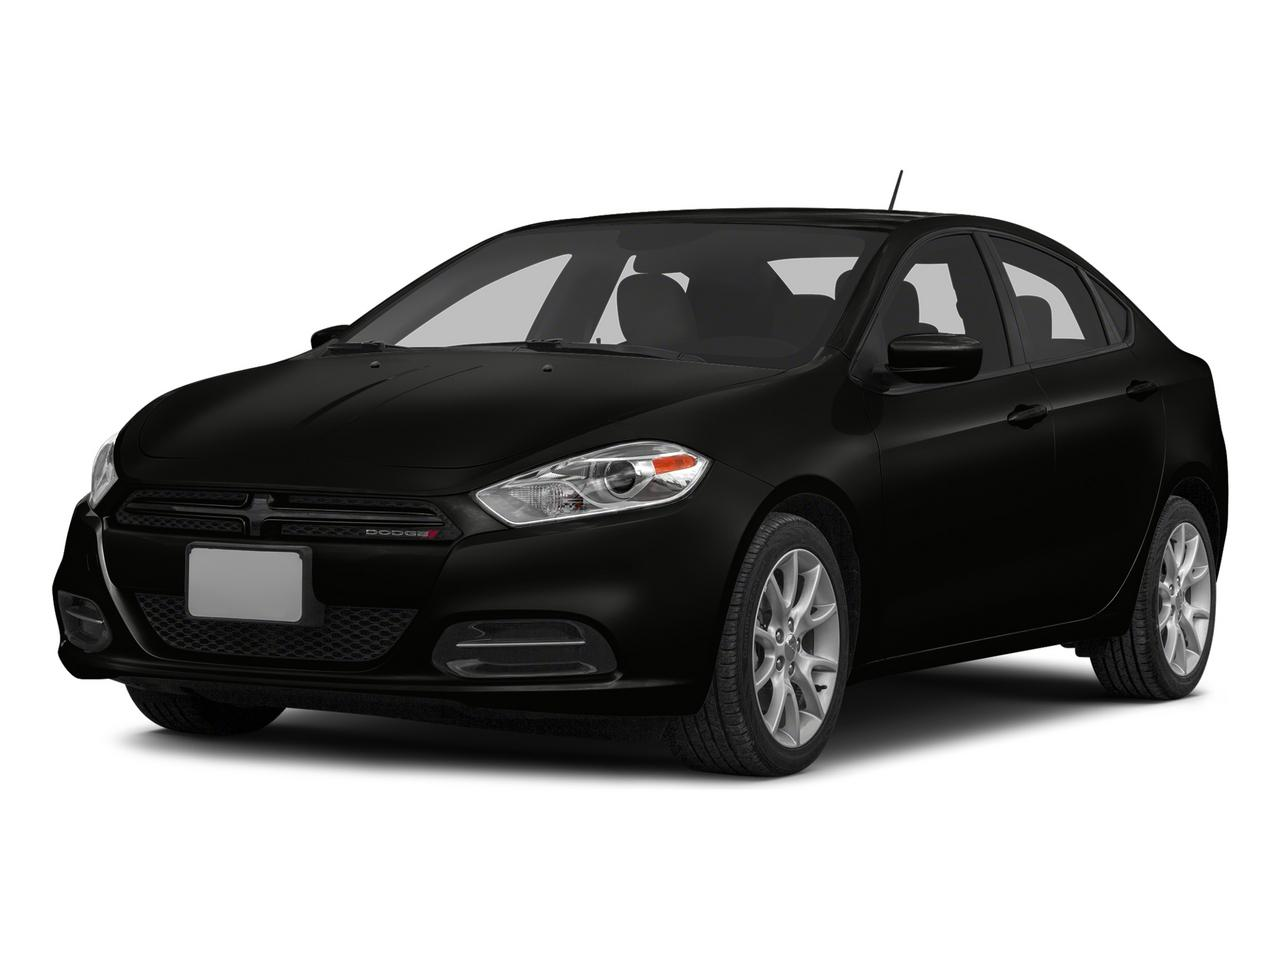 2015 Dodge Dart Vehicle Photo in Plainfield, IL 60586